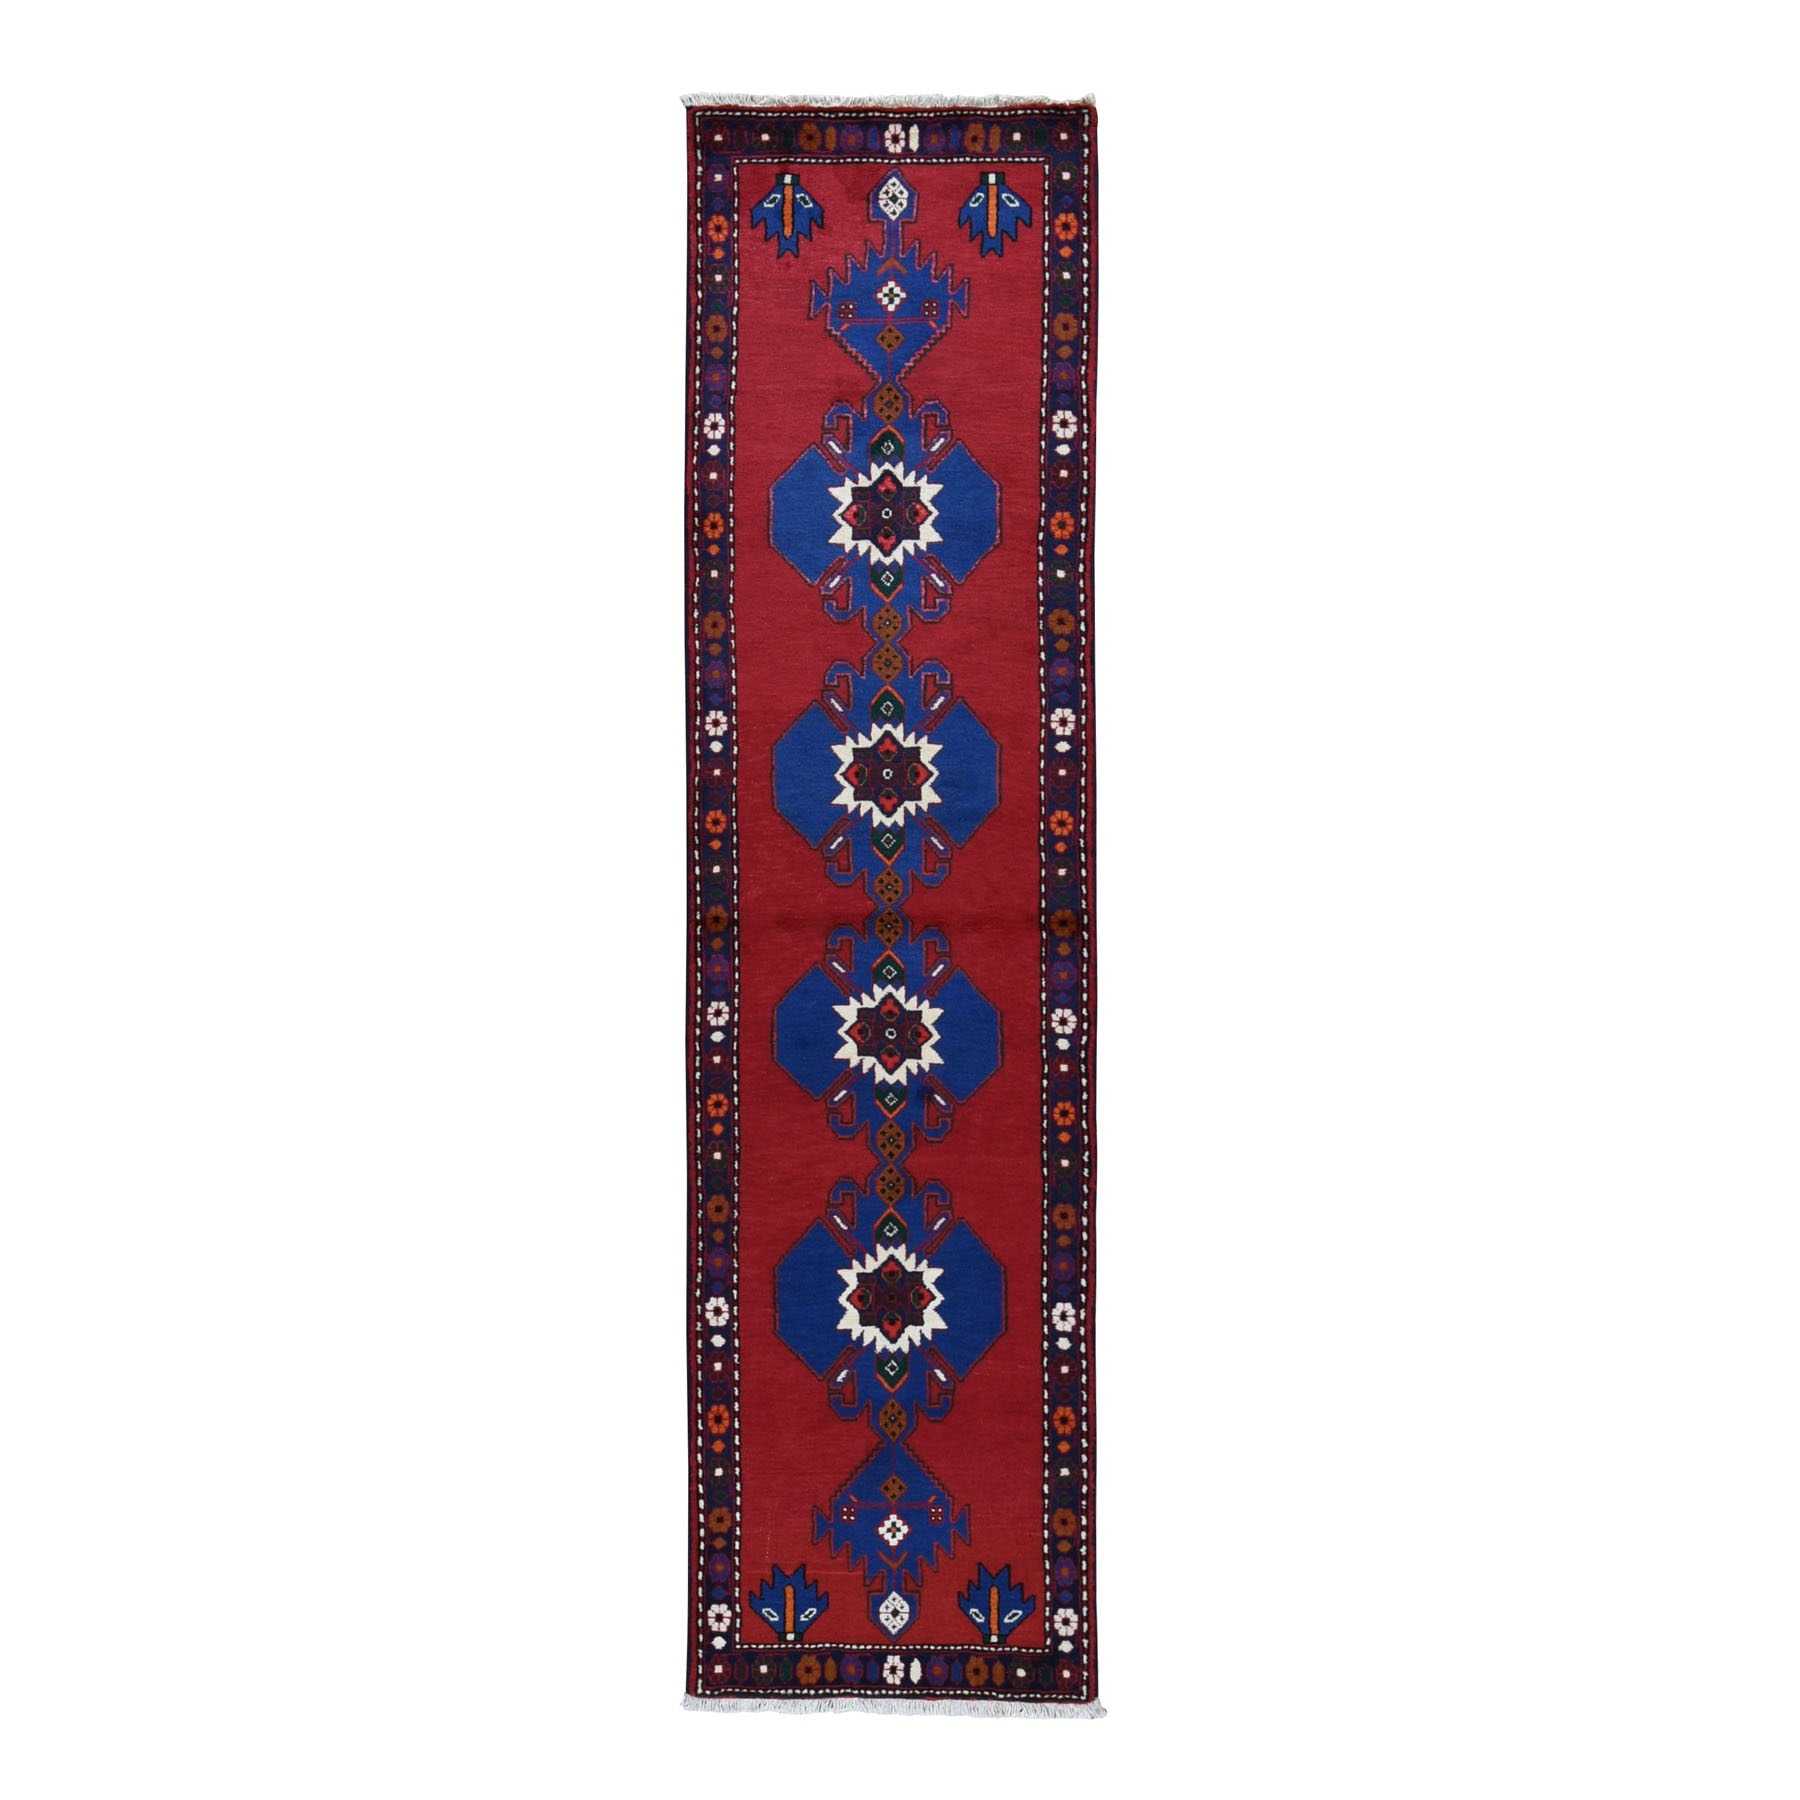 "2'5""X9'5"" Red New Persian Hamadan Pure Wool Repetitive Medallion Design Open Field Oriental Runner Rug moad9889"